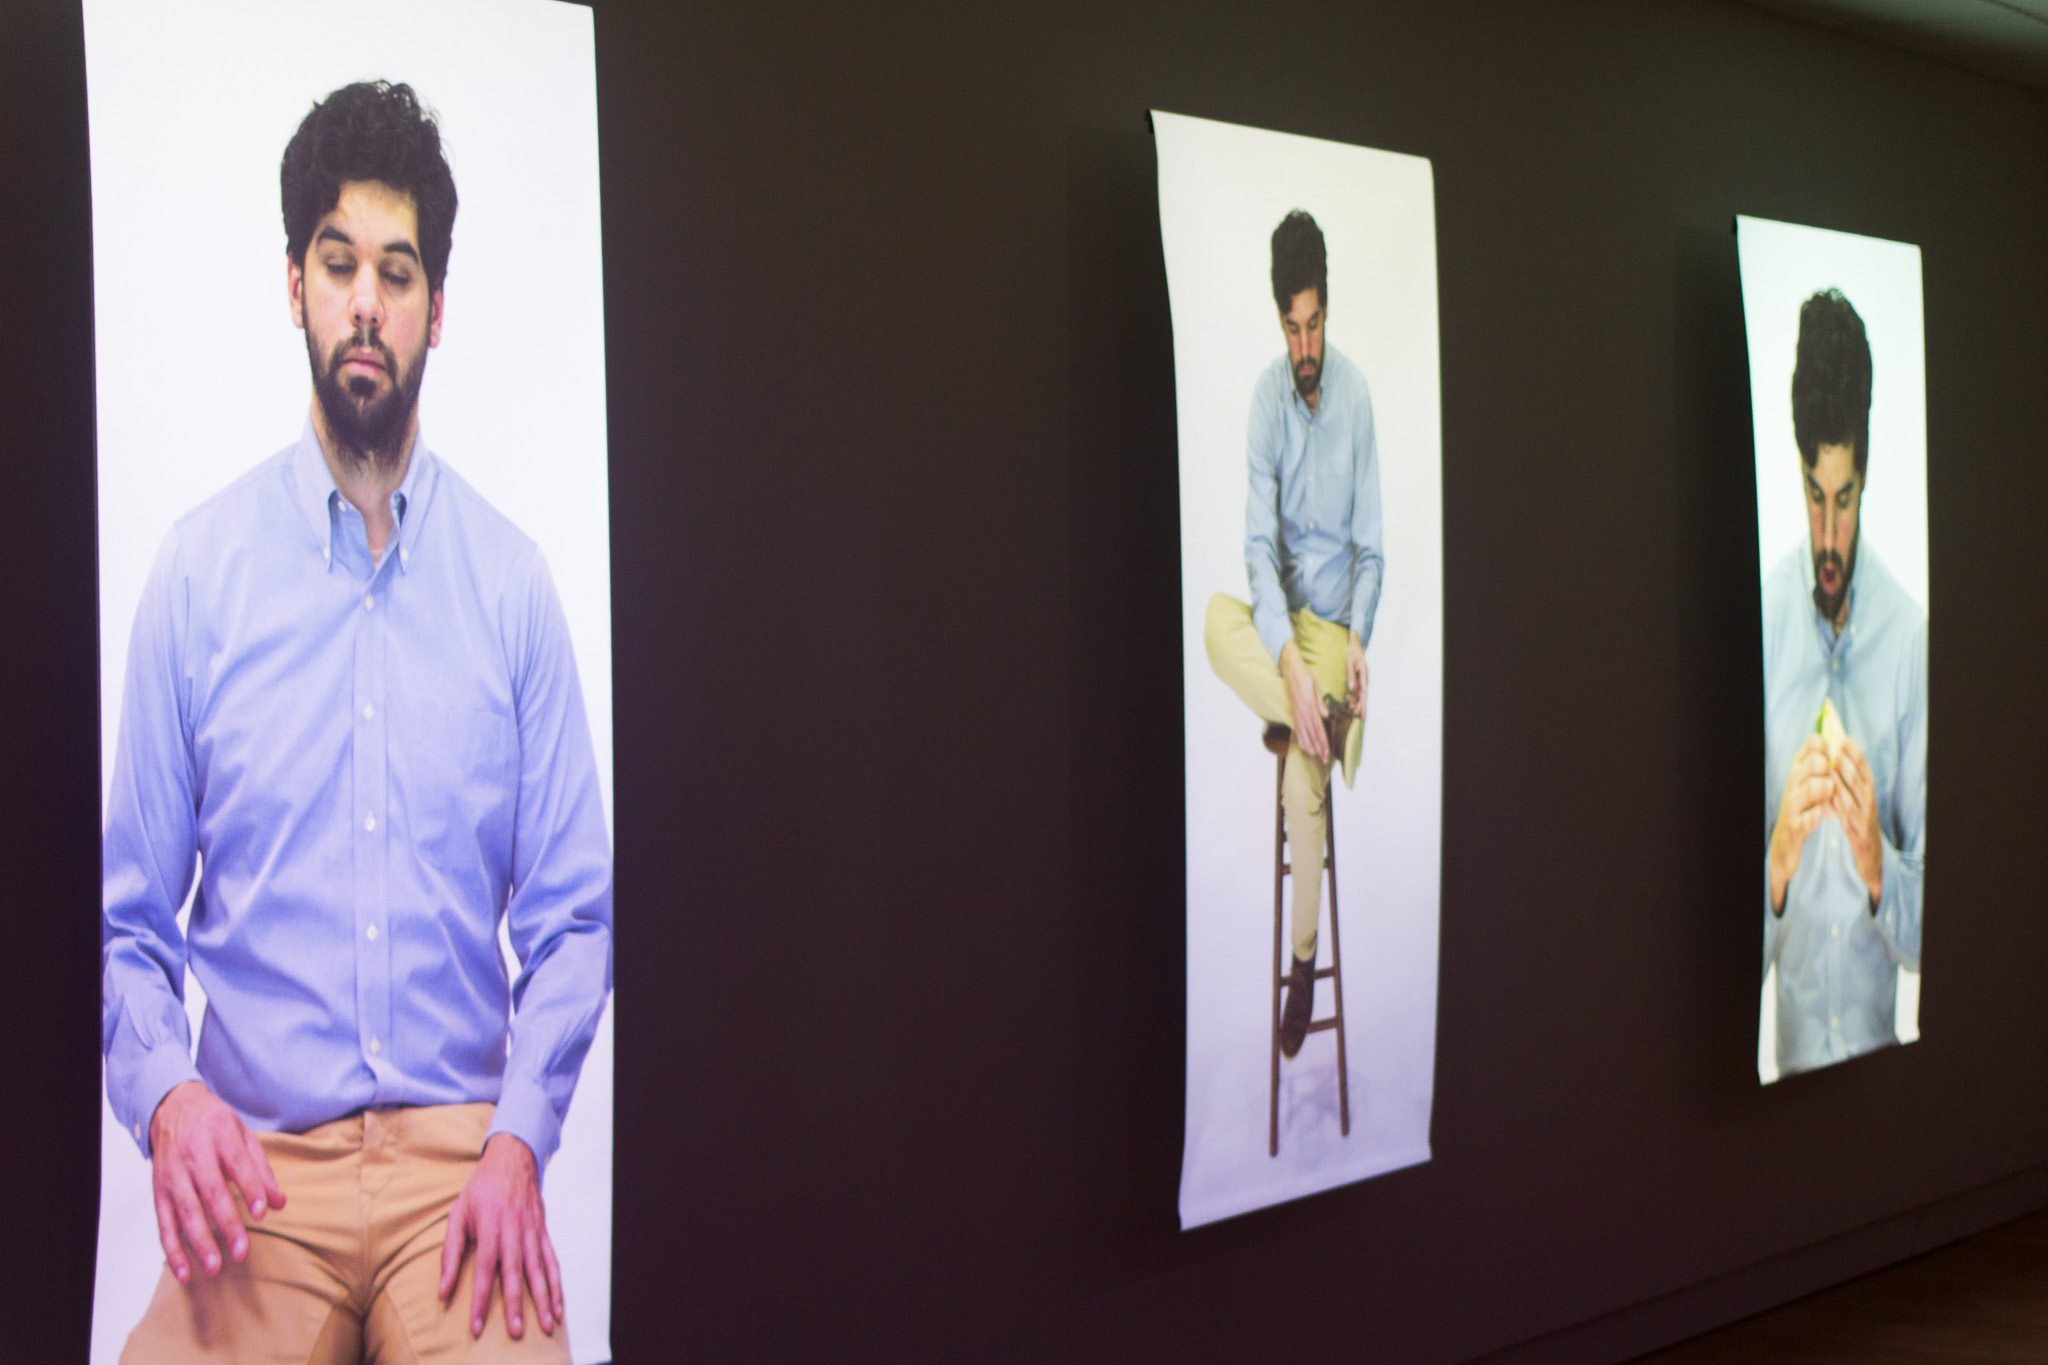 yale mfa painting thesis show Learn how outfront media and yale fine arts program partnered together for their 2016 thesis and exhibition view their digital billboard campaigns.